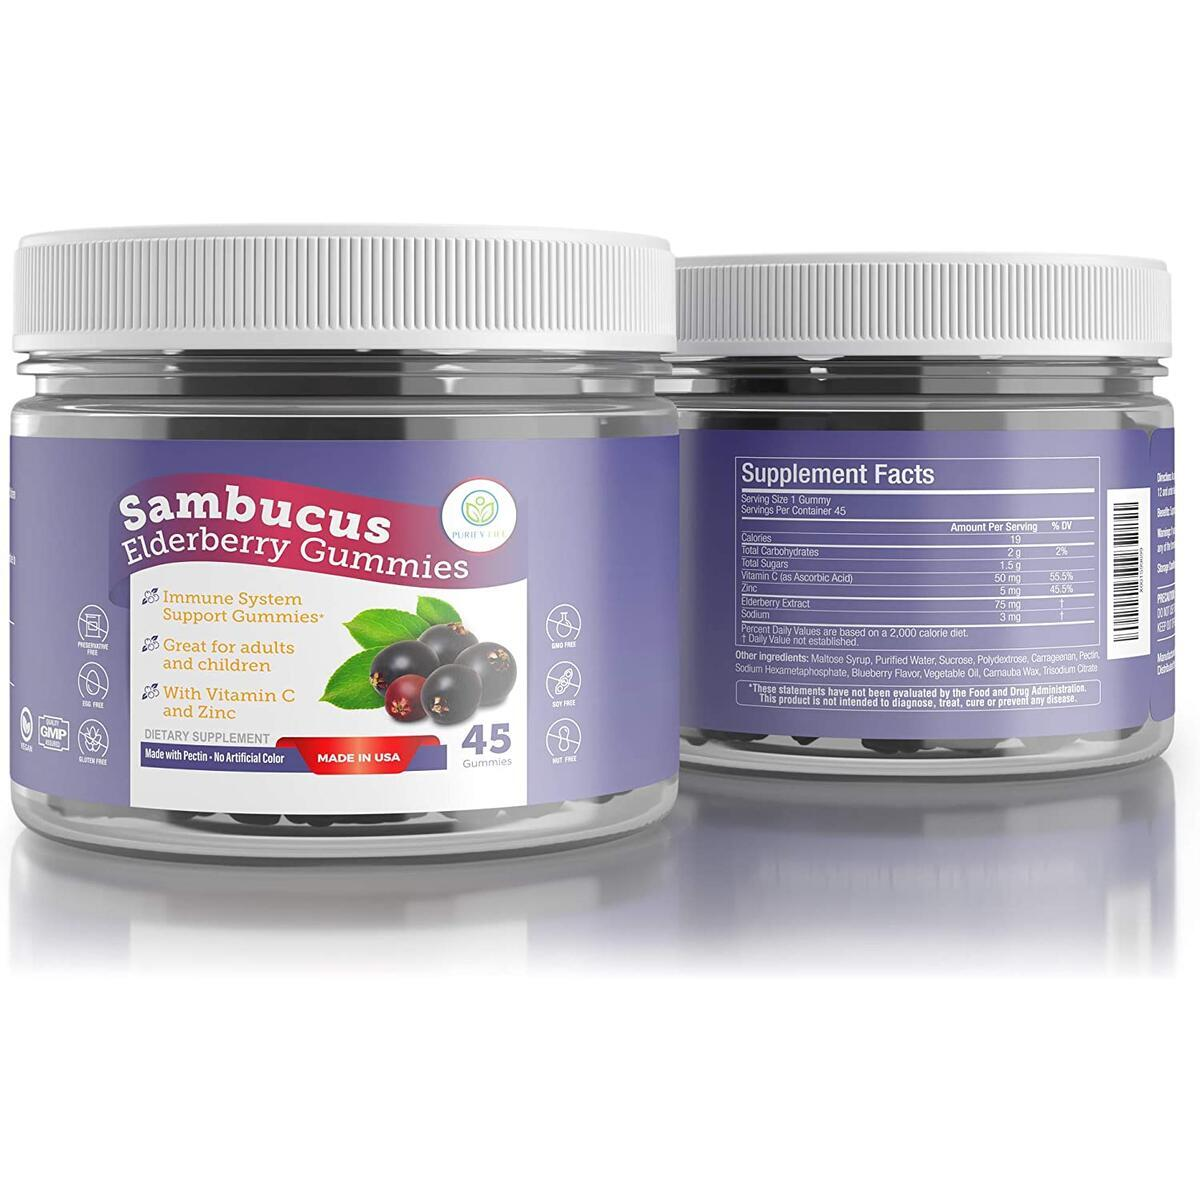 Elderberry Gummies for Kids & Adults - Sambucus, Vitamin C and Zinc (45 Gummies) 130mg Immune System Support Booster - Allergy Cold Relief - Chewable Supplement - No Capsules, Pills, Tablets or Syrup